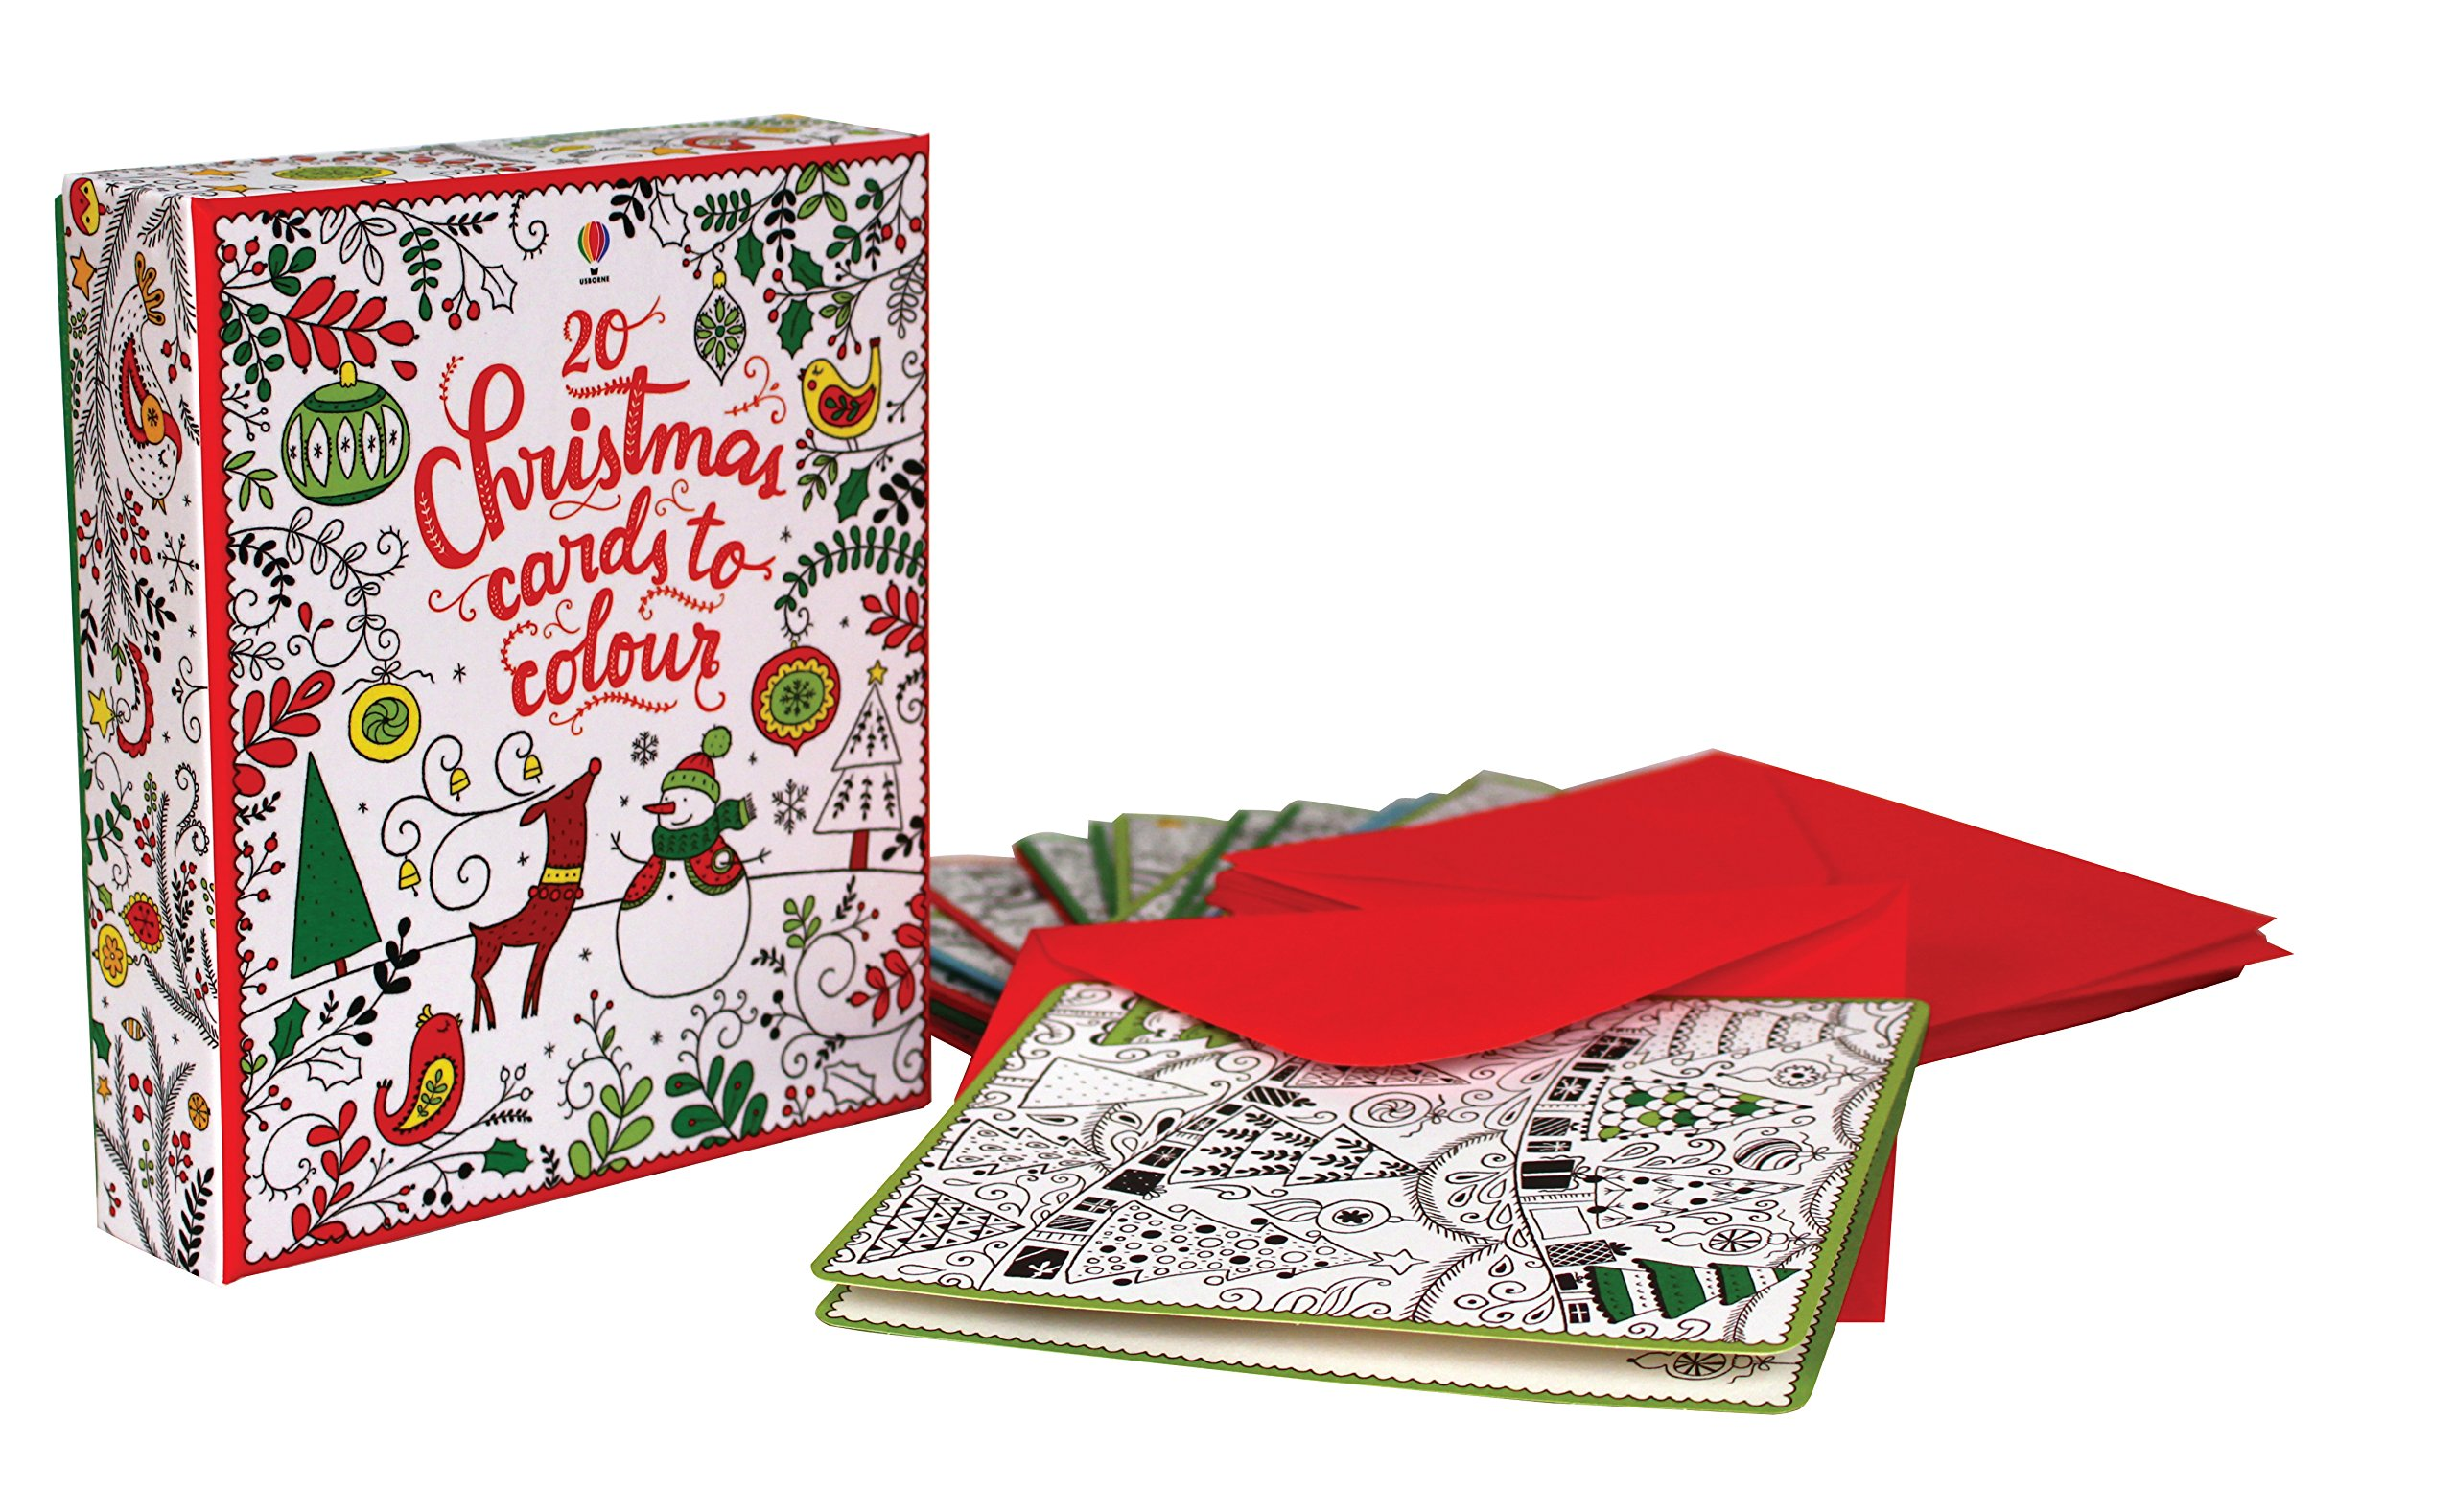 The coloring book of cards and envelopes flowers and butterflies - The Coloring Book Of Cards And Envelopes Flowers And Butterflies